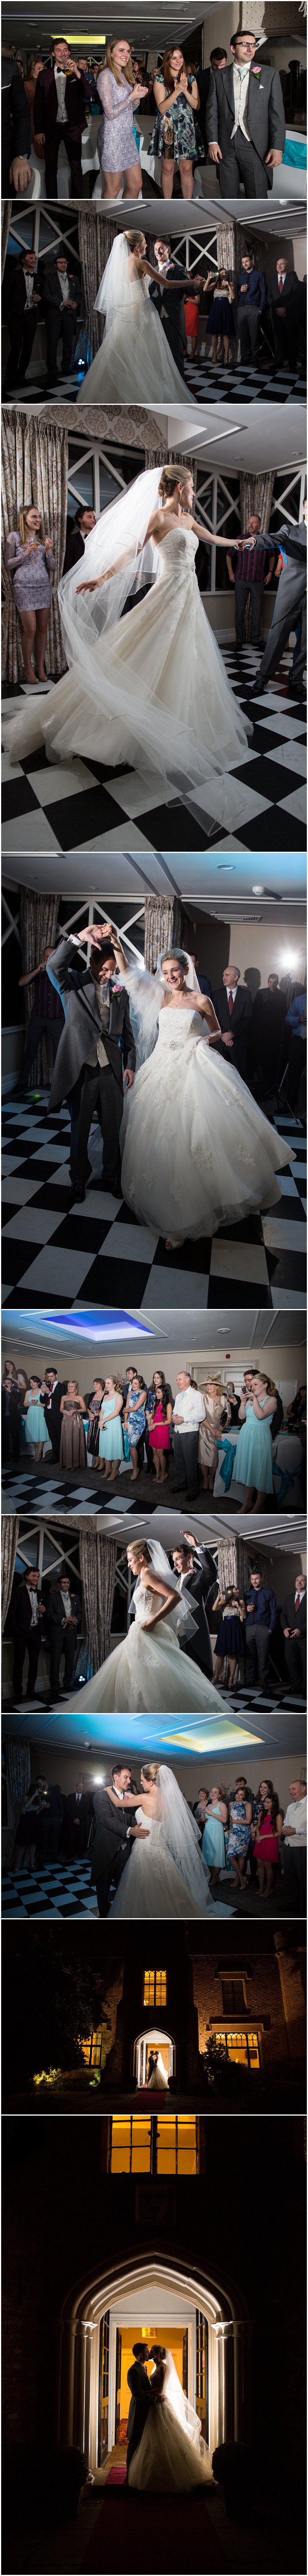 First Dance at Crabwall Manor wedding Chester